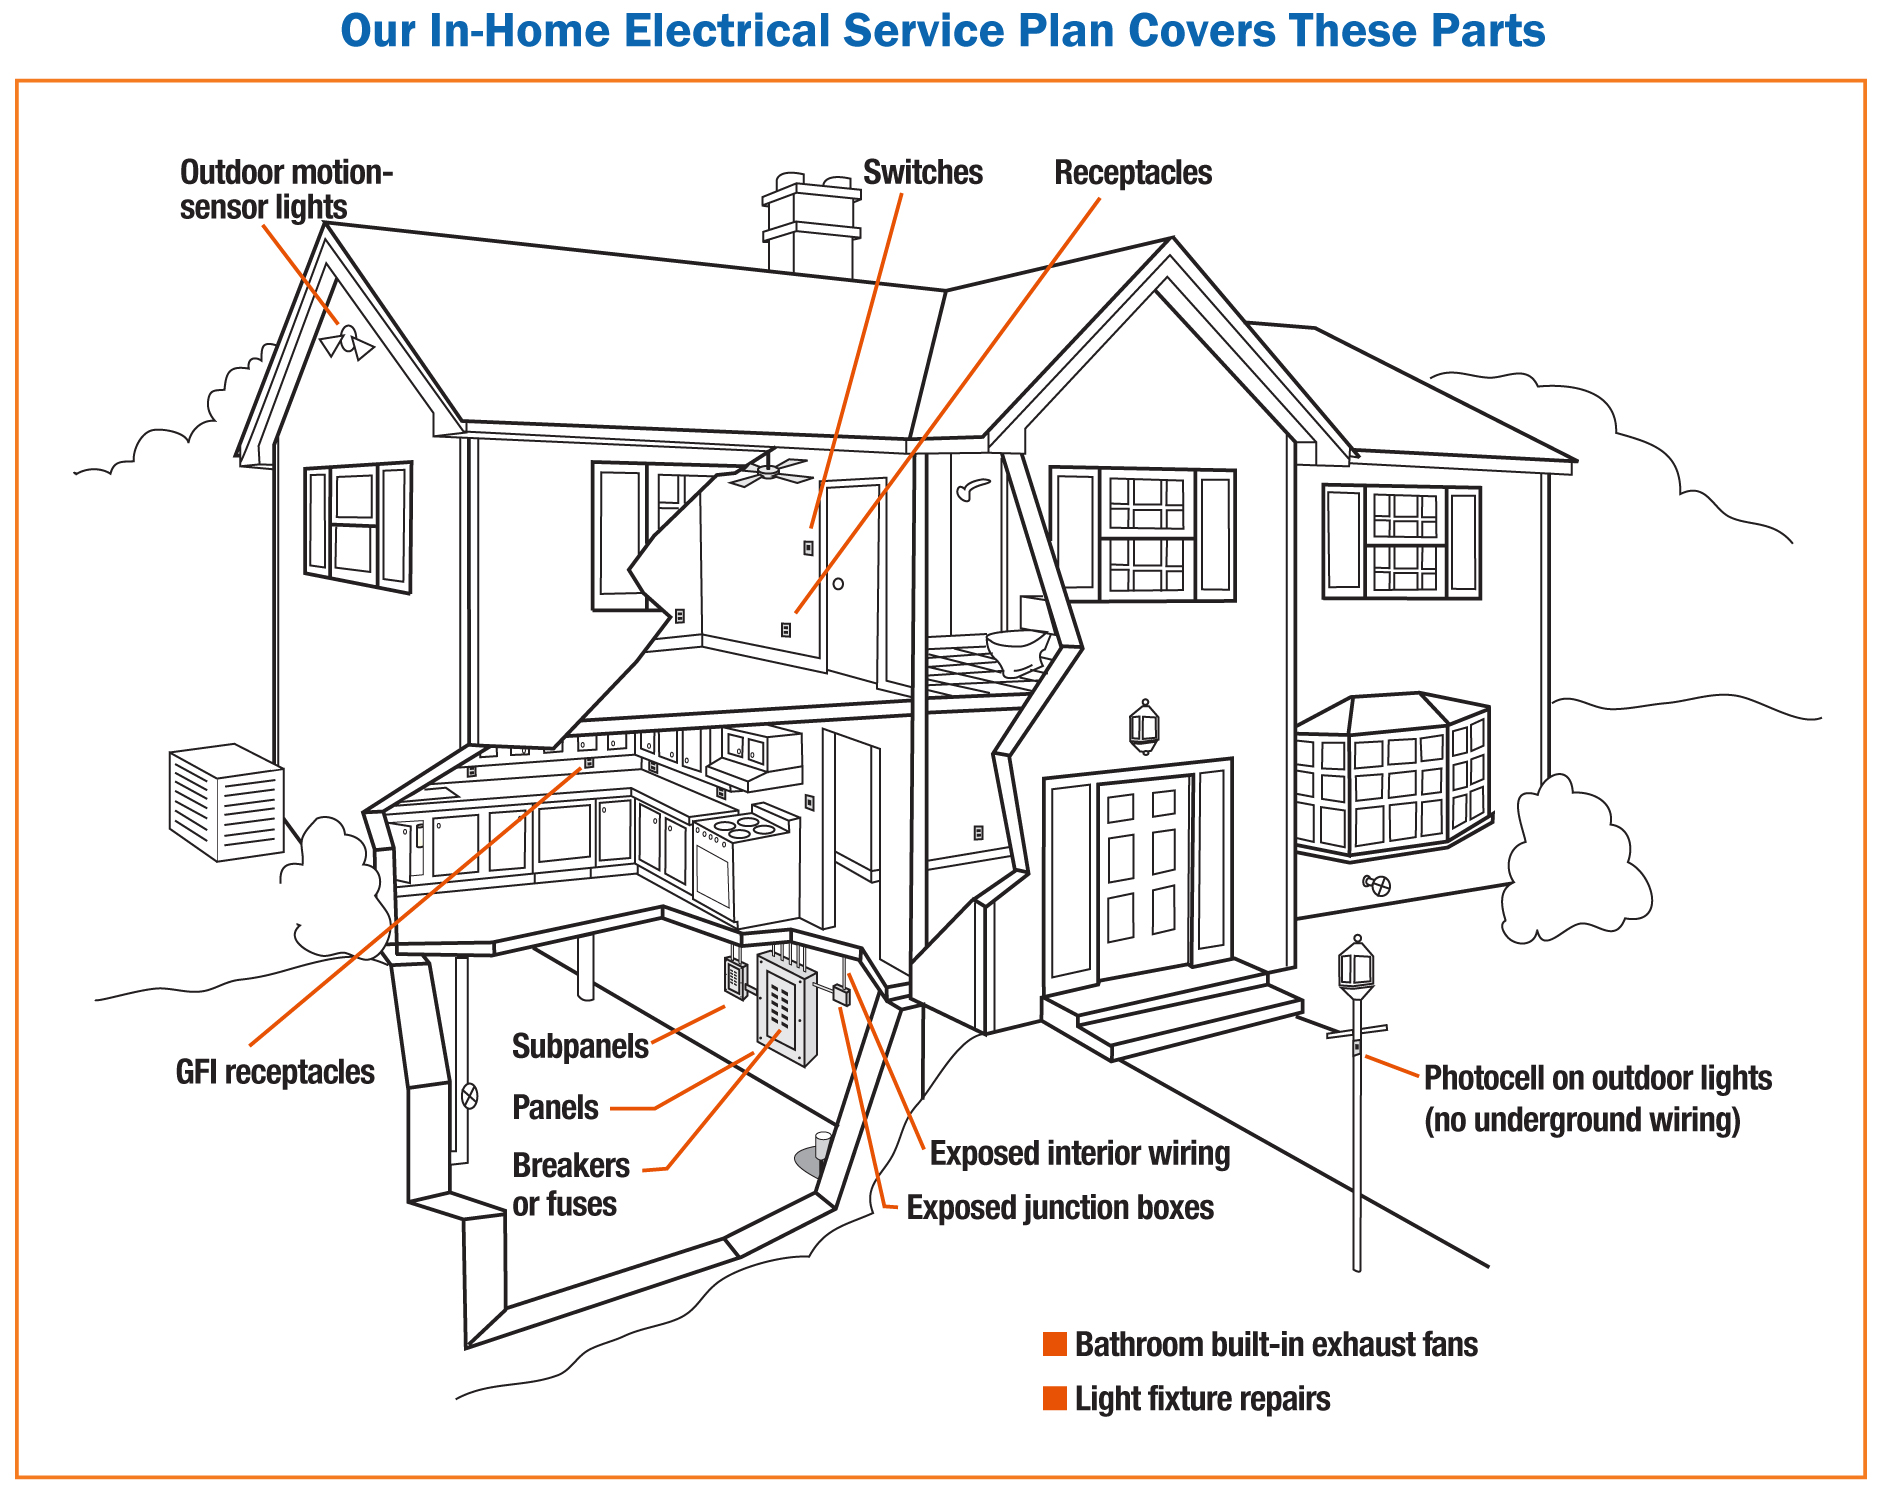 Electrical Plan Images Auto Wiring Diagram Telephone Line Group Picture Image By Tag Keywordpictures Tx